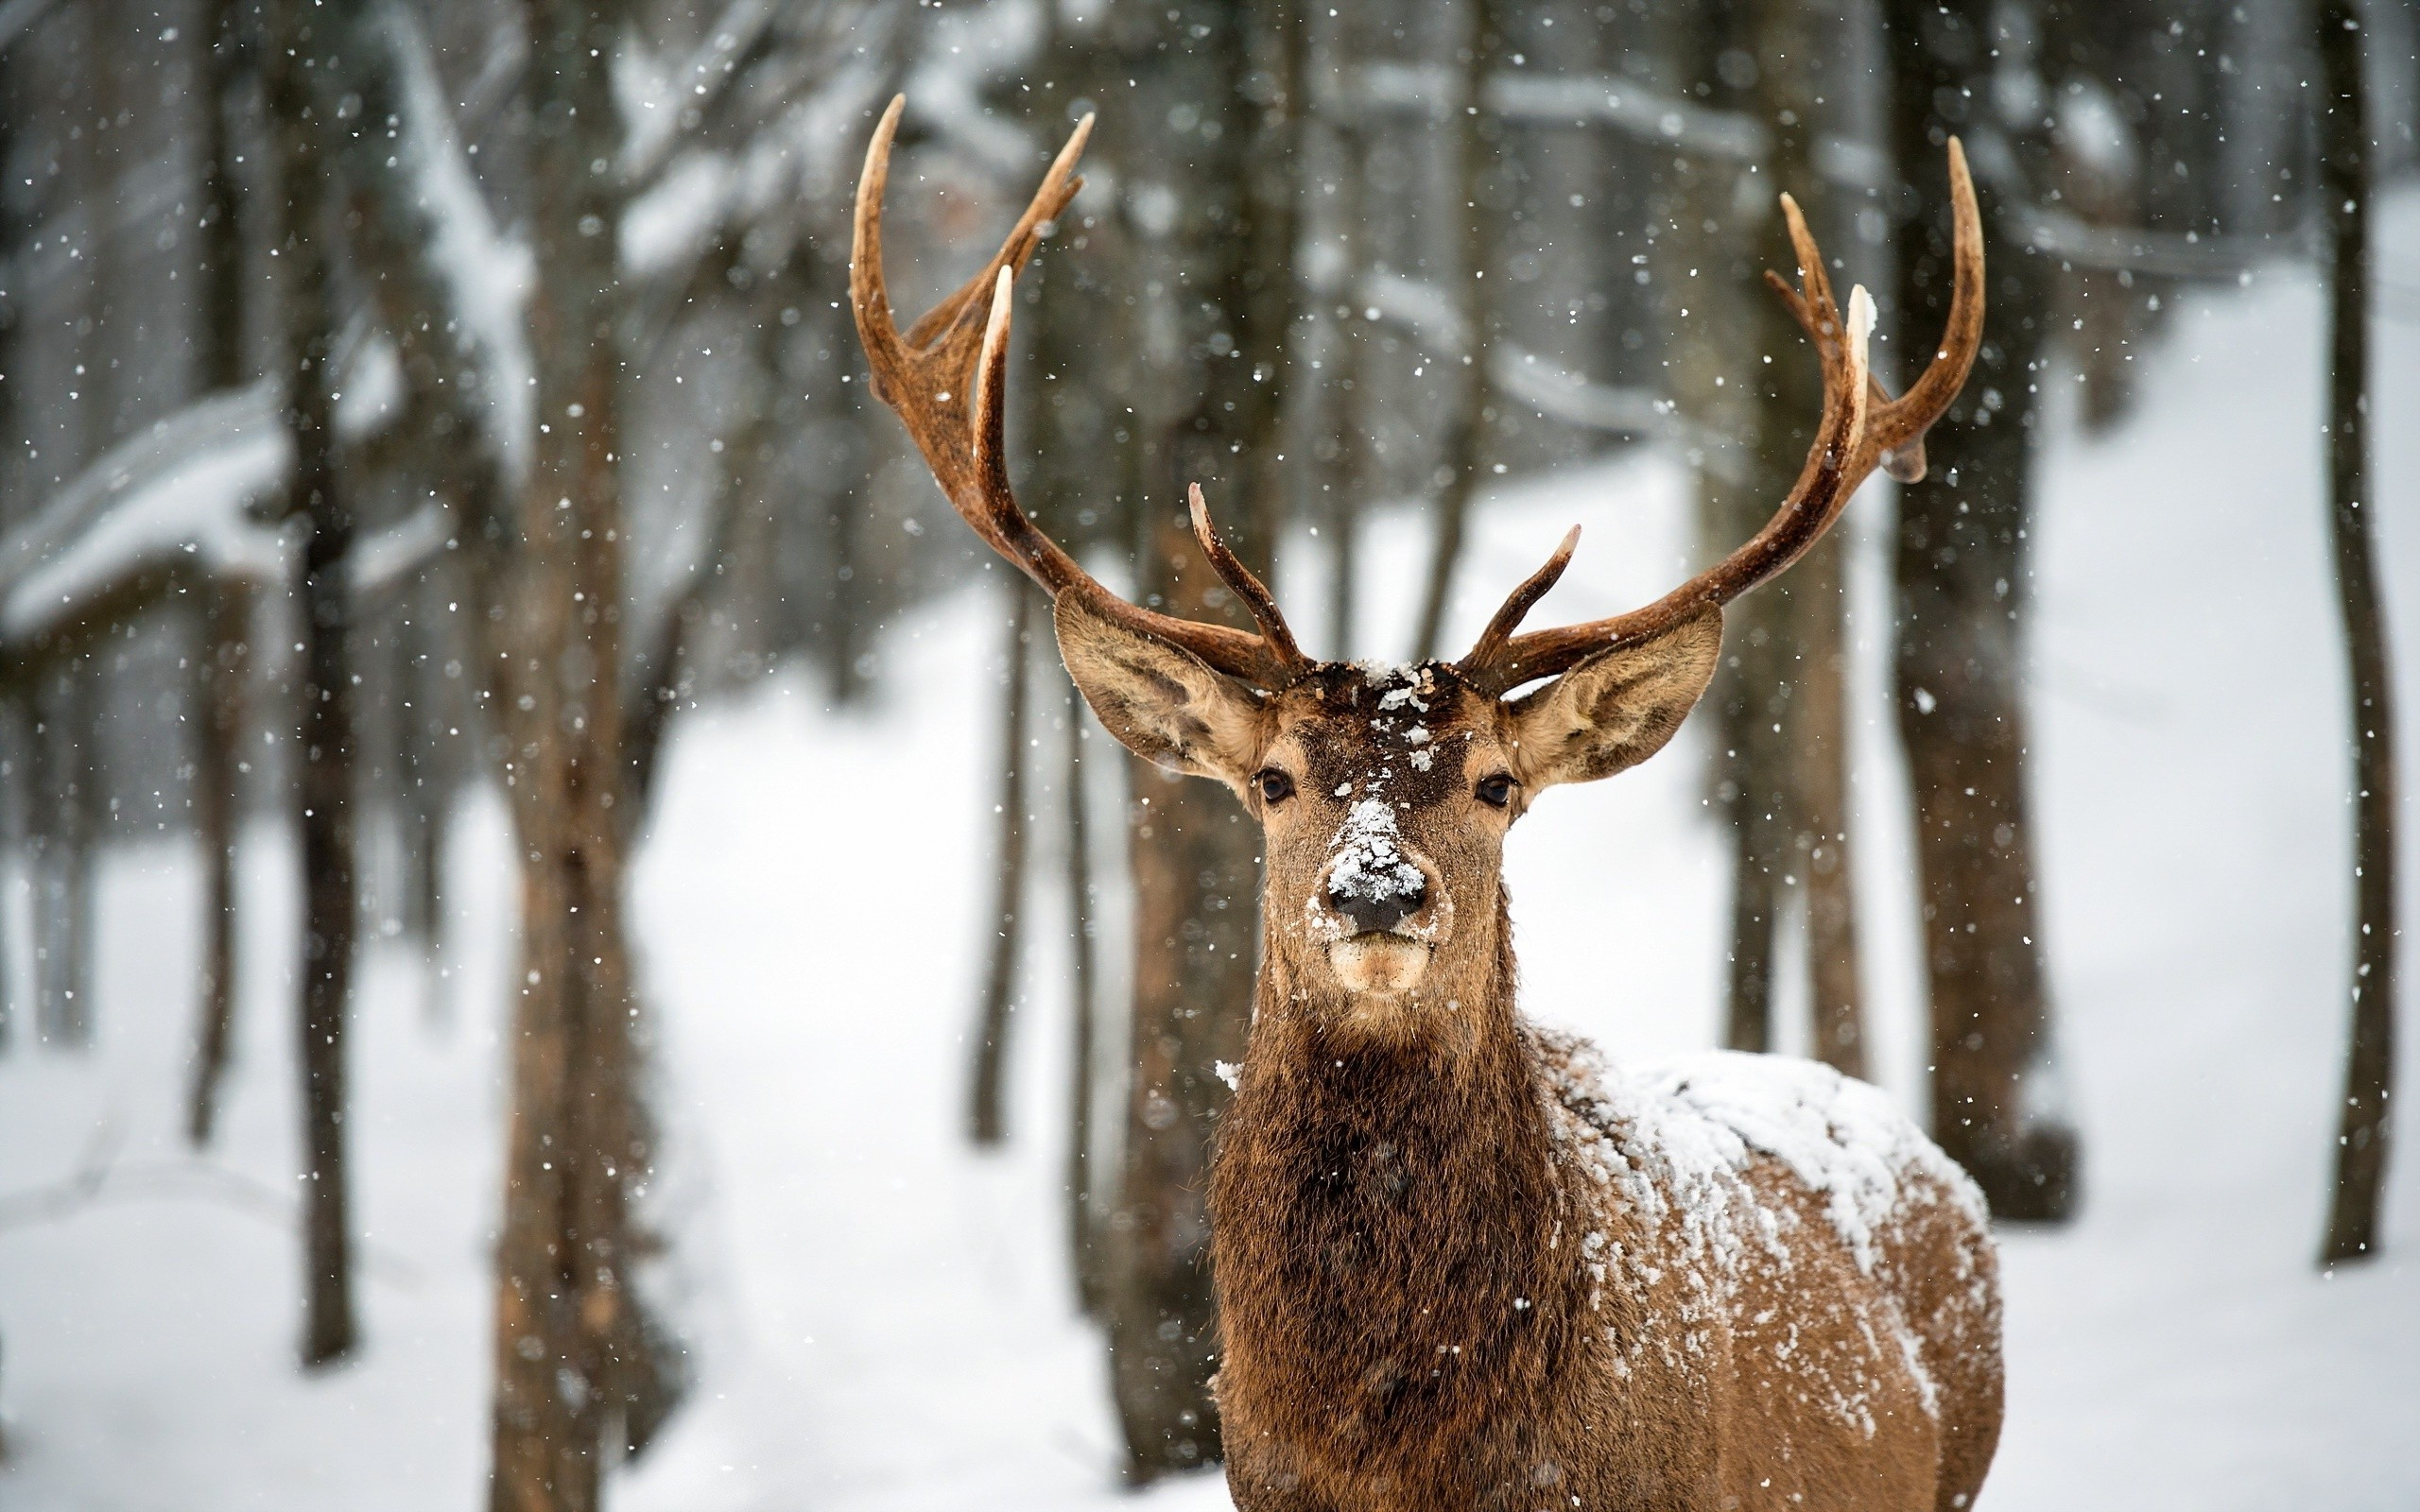 Res: 2560x1600, Deer in Snow Wallpaper - WallpaperSafari